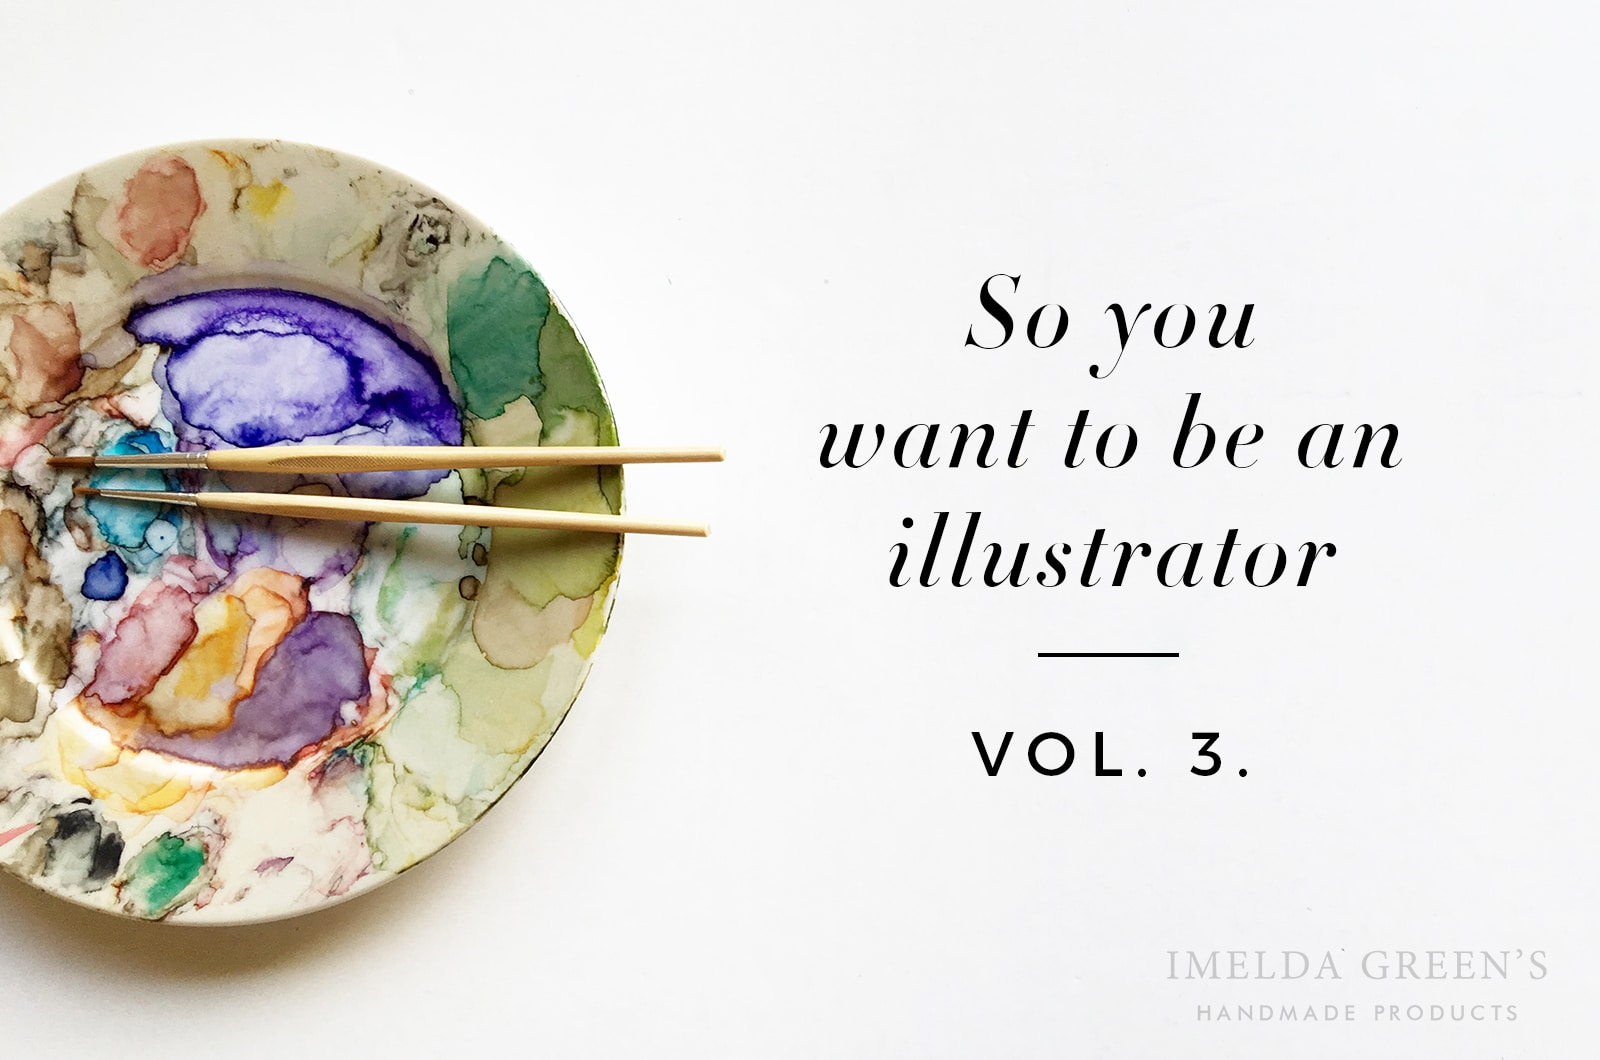 So you want to be an illustrator | Vol. 3 - how to have multiple income streams